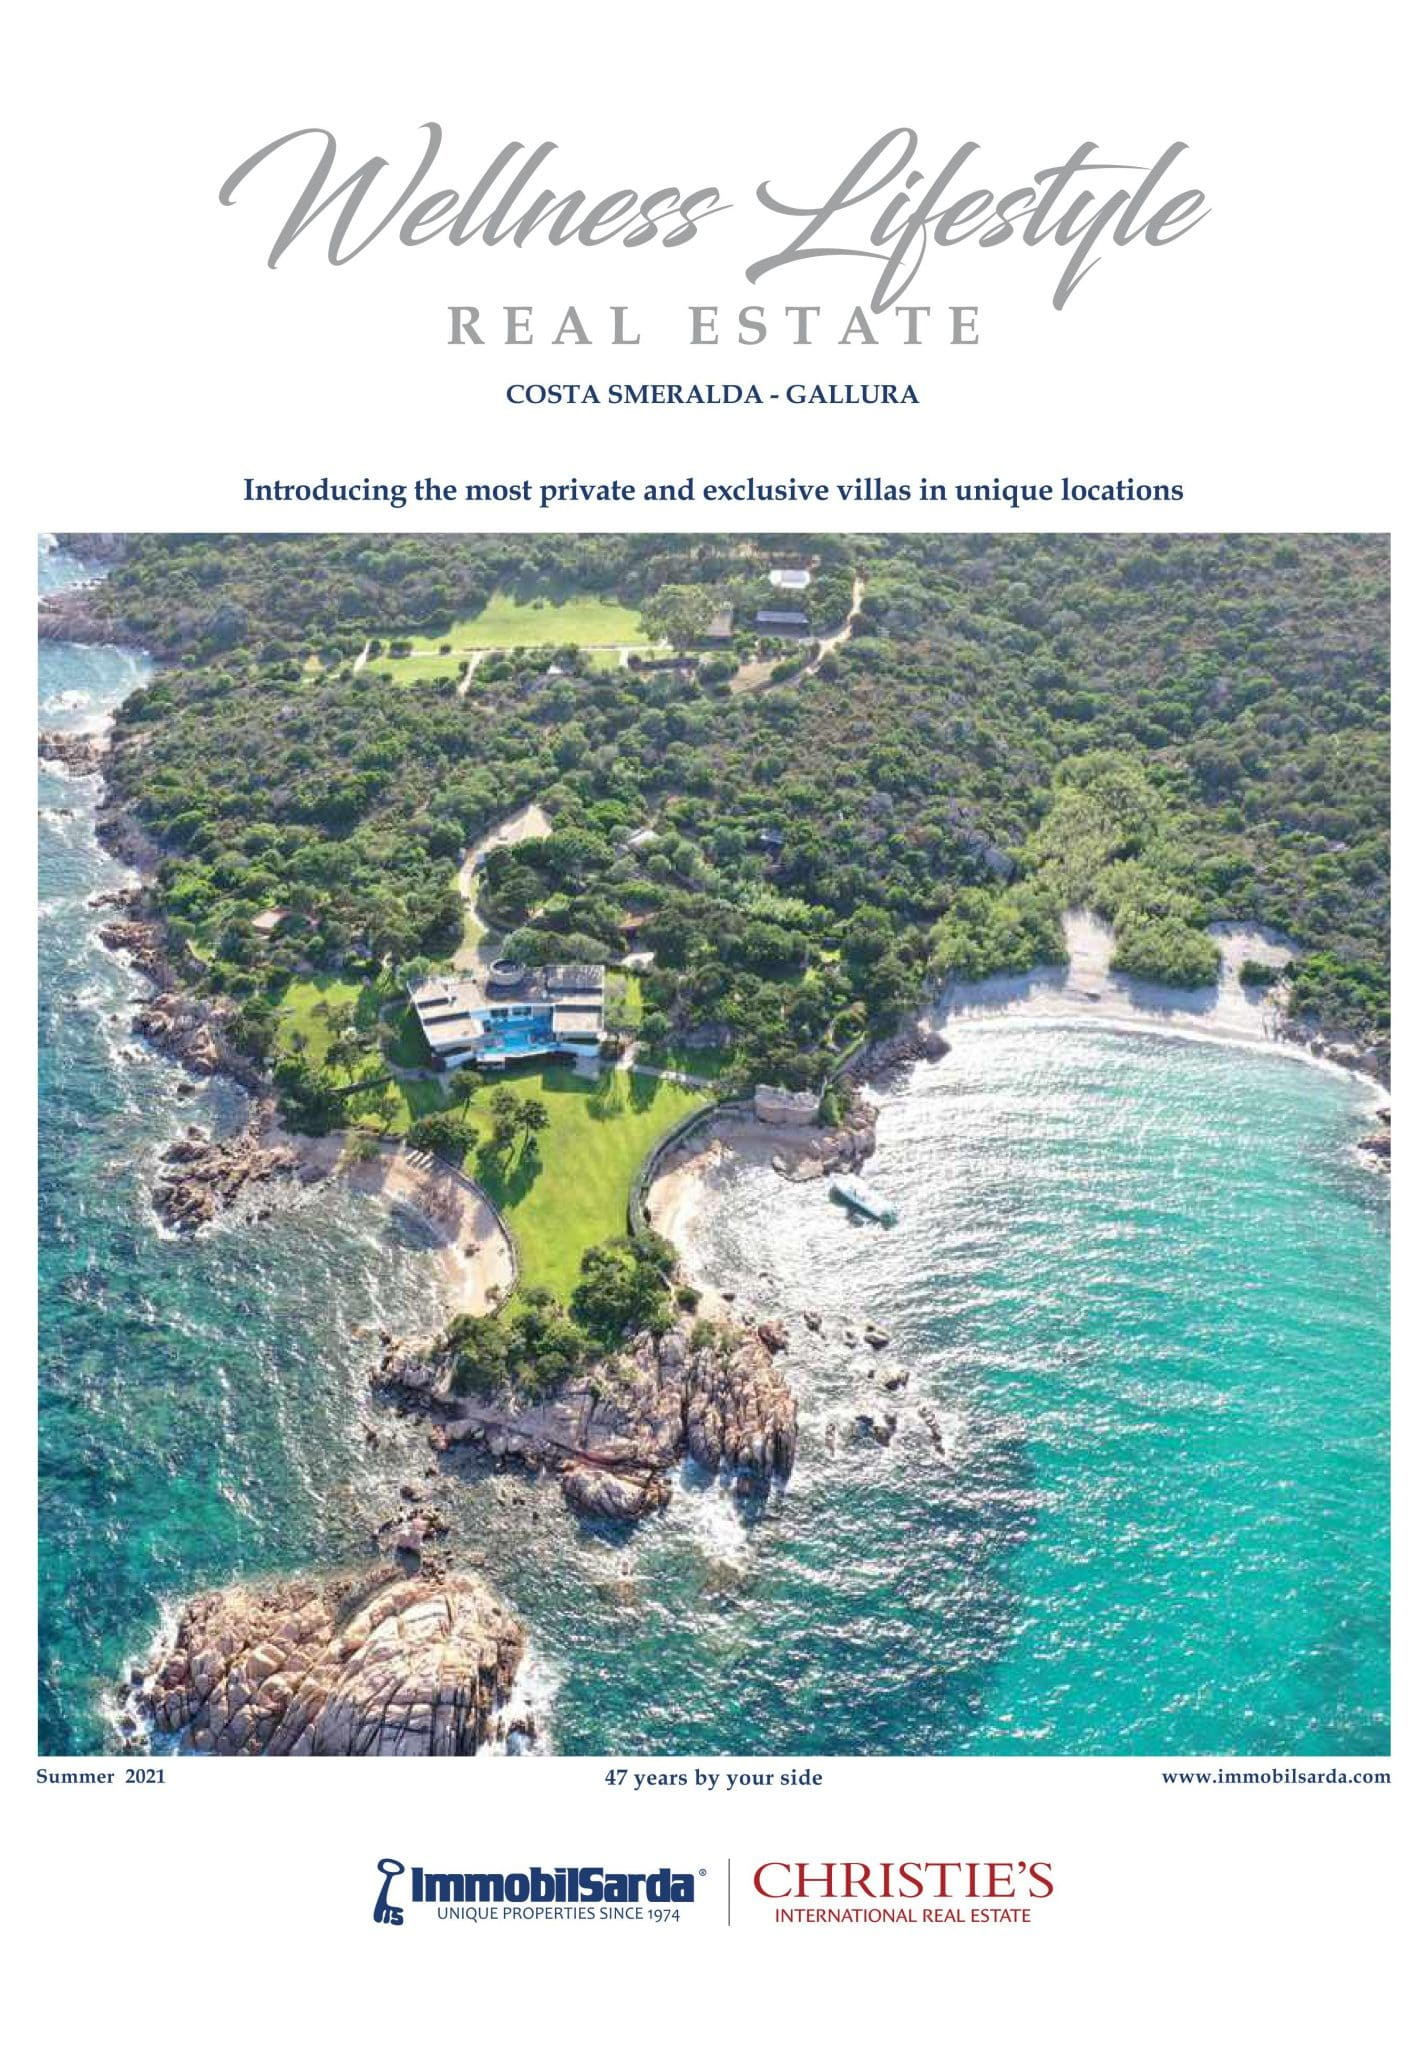 Wellness Lifestyle Real Estate Catalogue